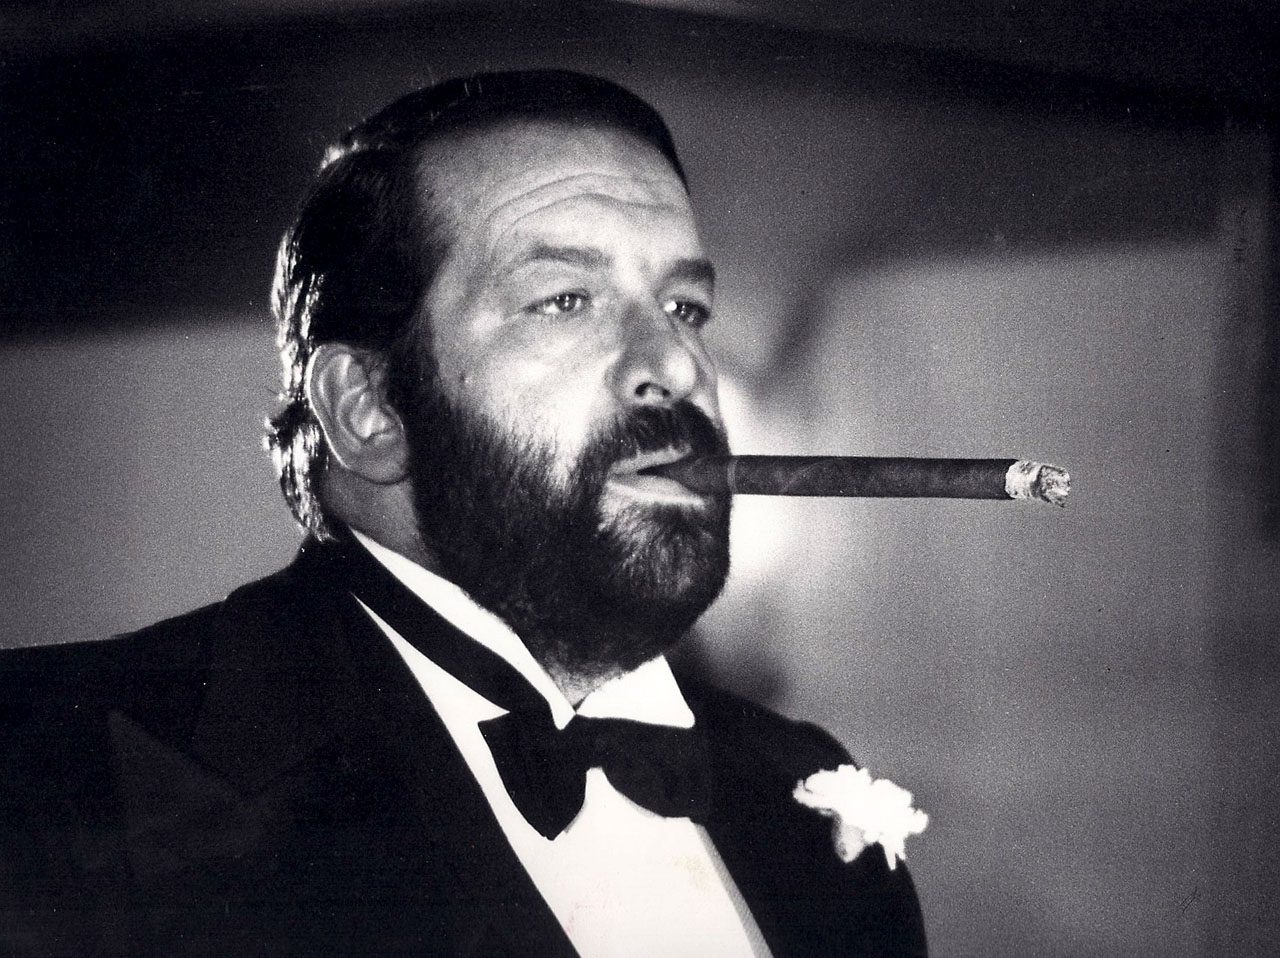 bud spencer sigaro